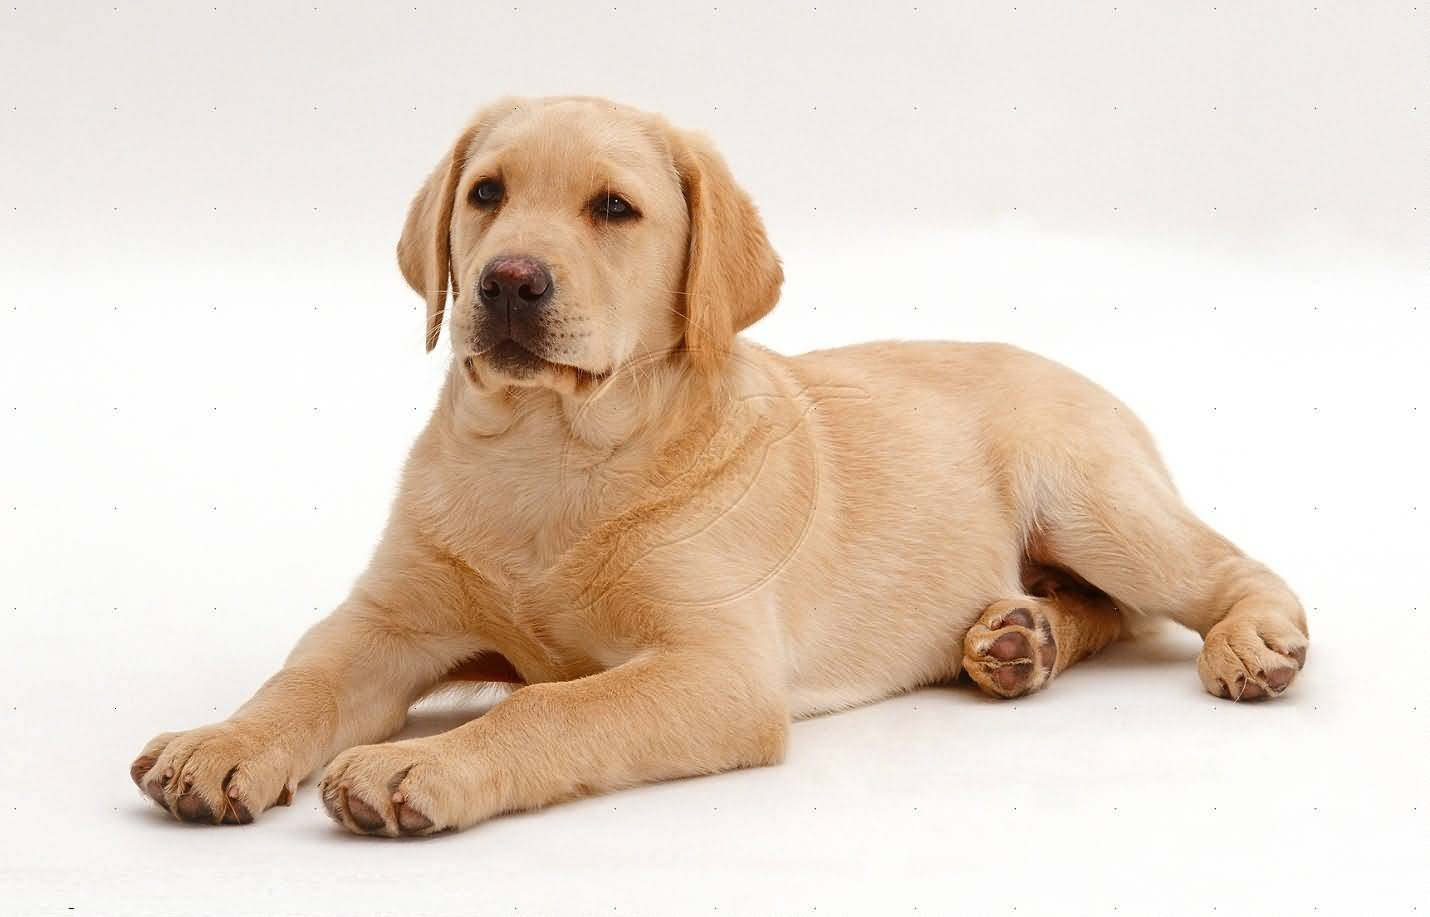 Pure Golden Sitting Labrador Retriever Dog Photo